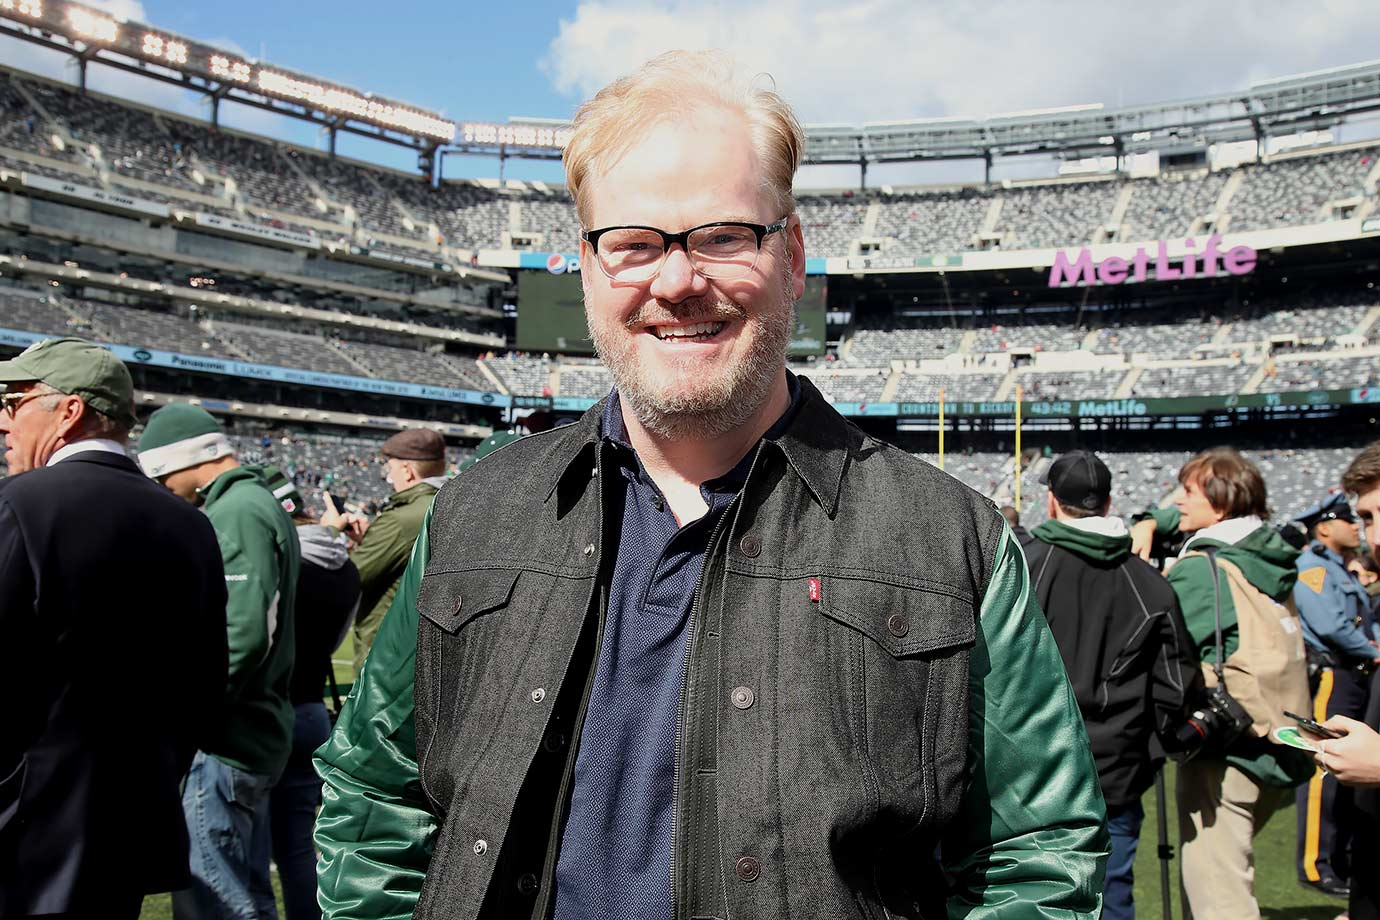 New York Jets vs. Washington Redskins on Oct. 18, 2015 at MetLife Stadium in East Rutherford, N.J.